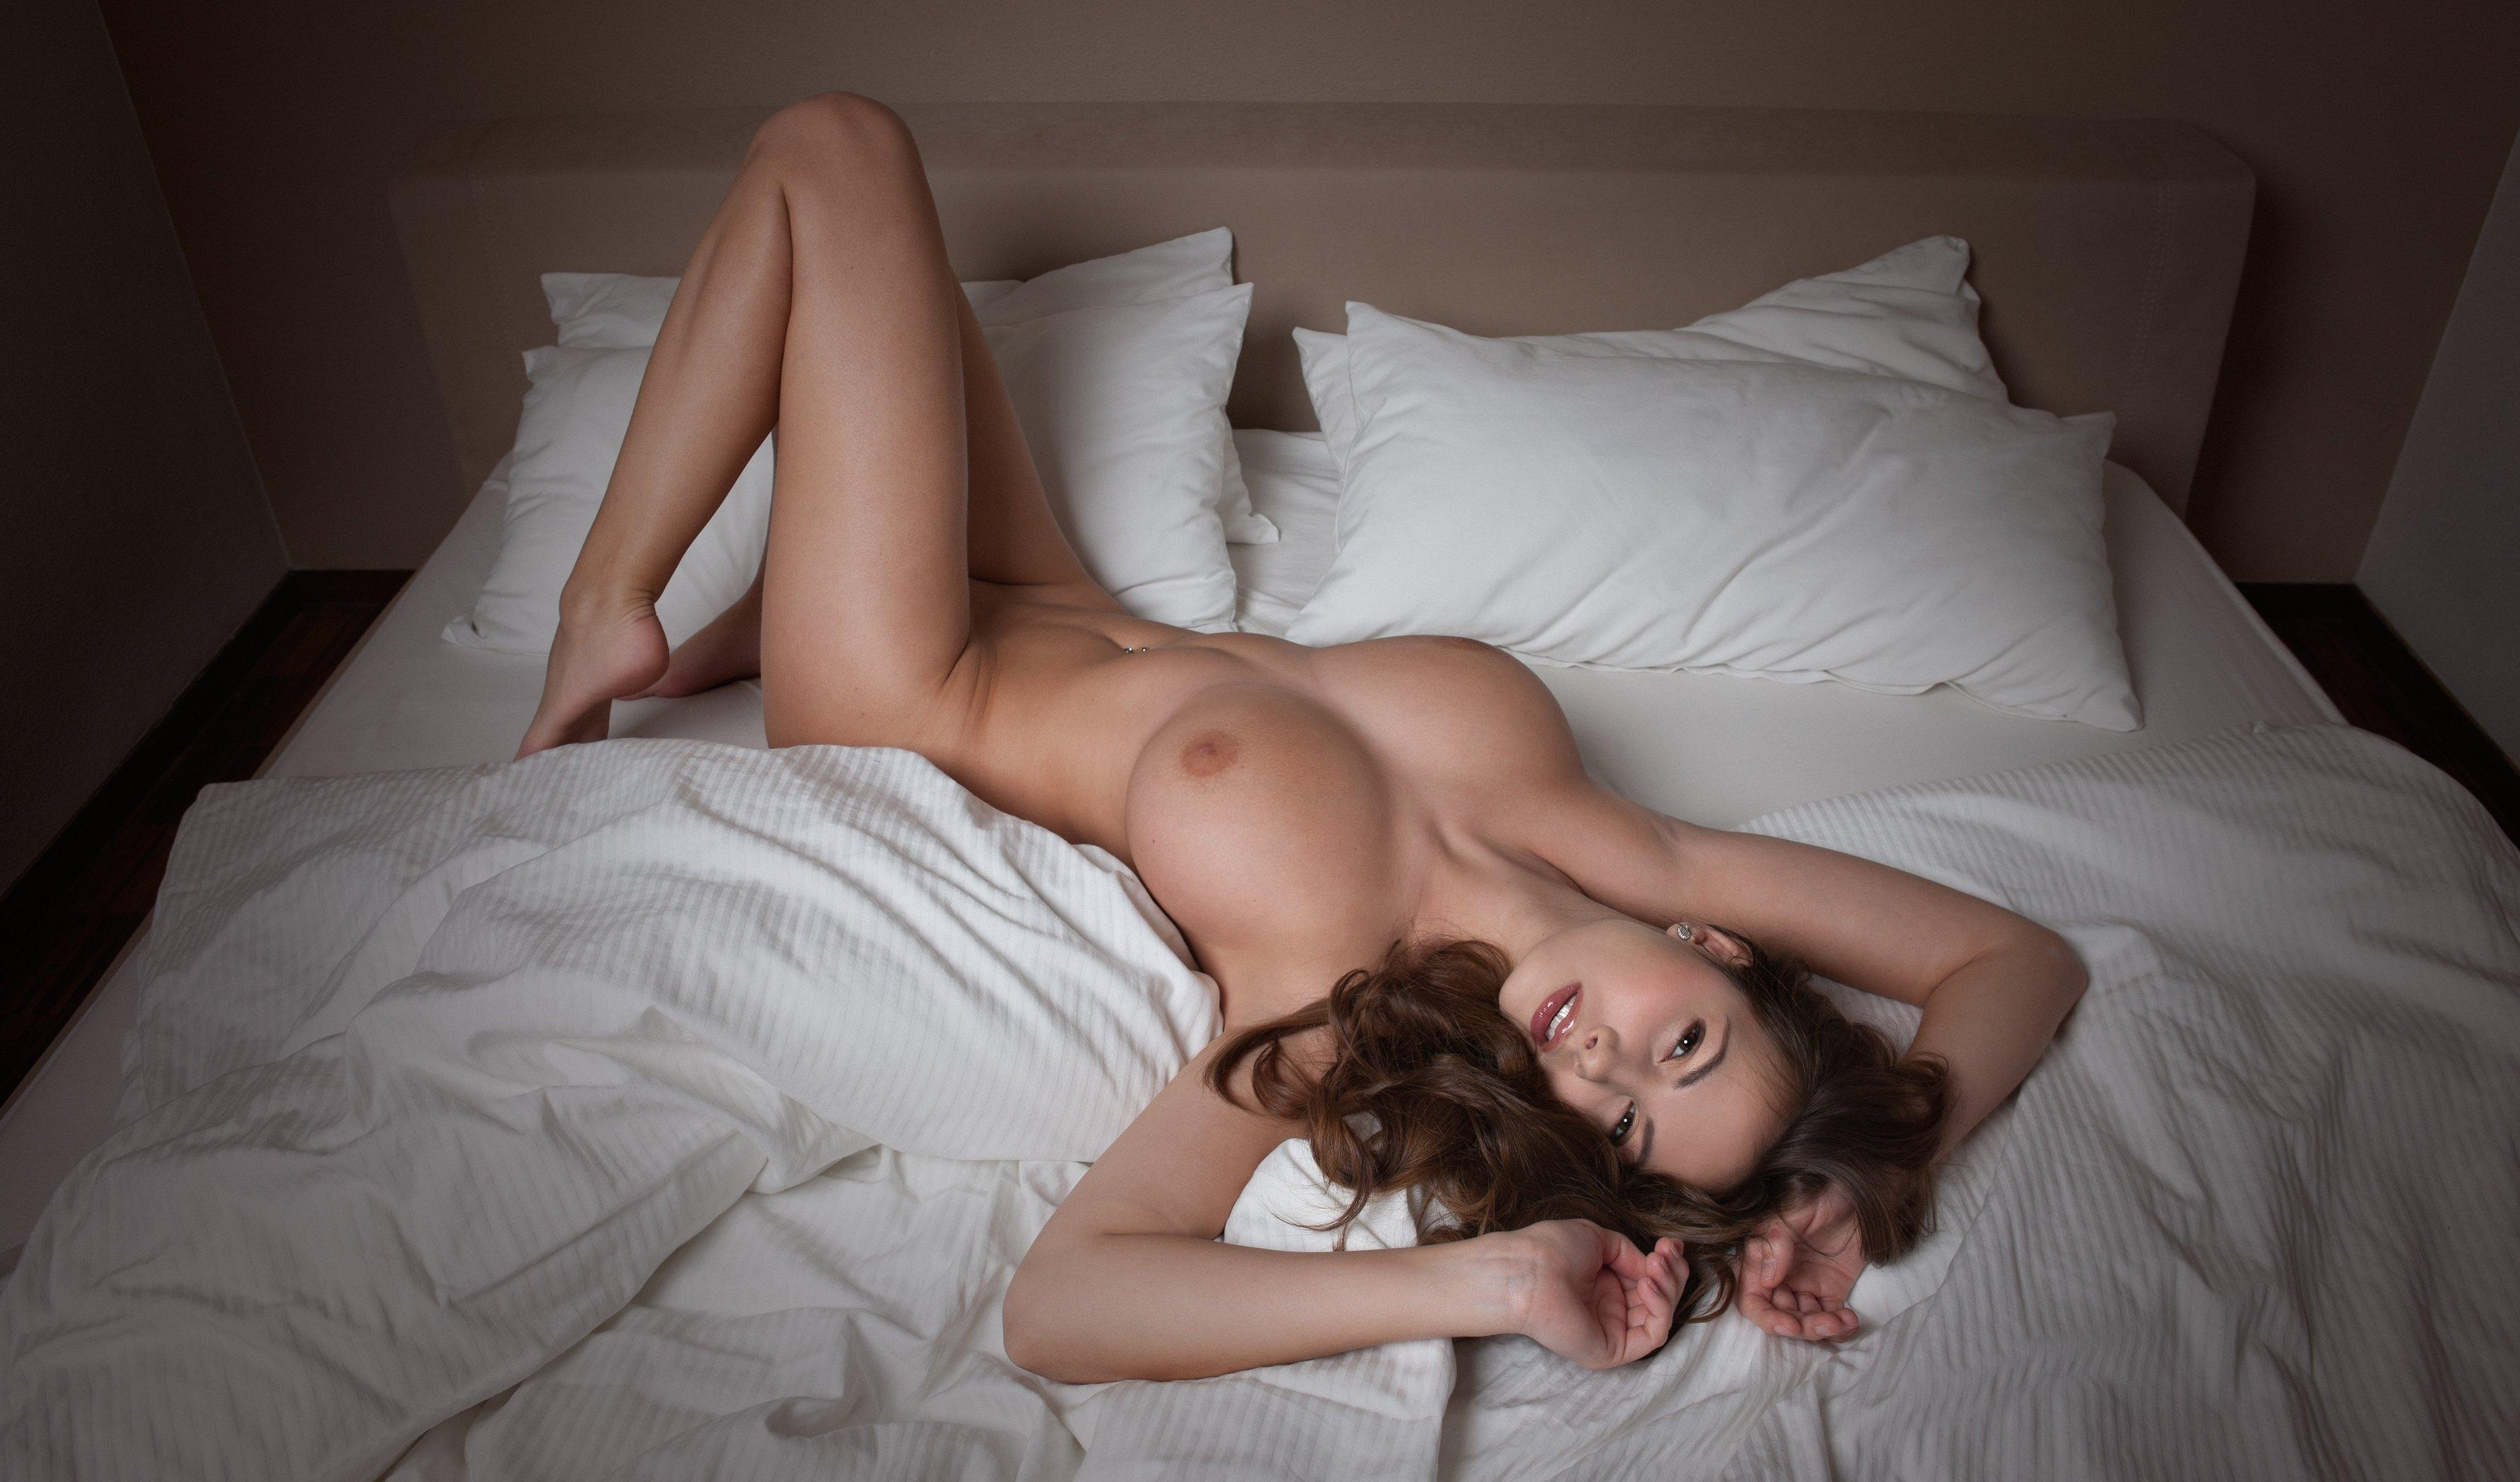 Sexy Topless Girls On Beds